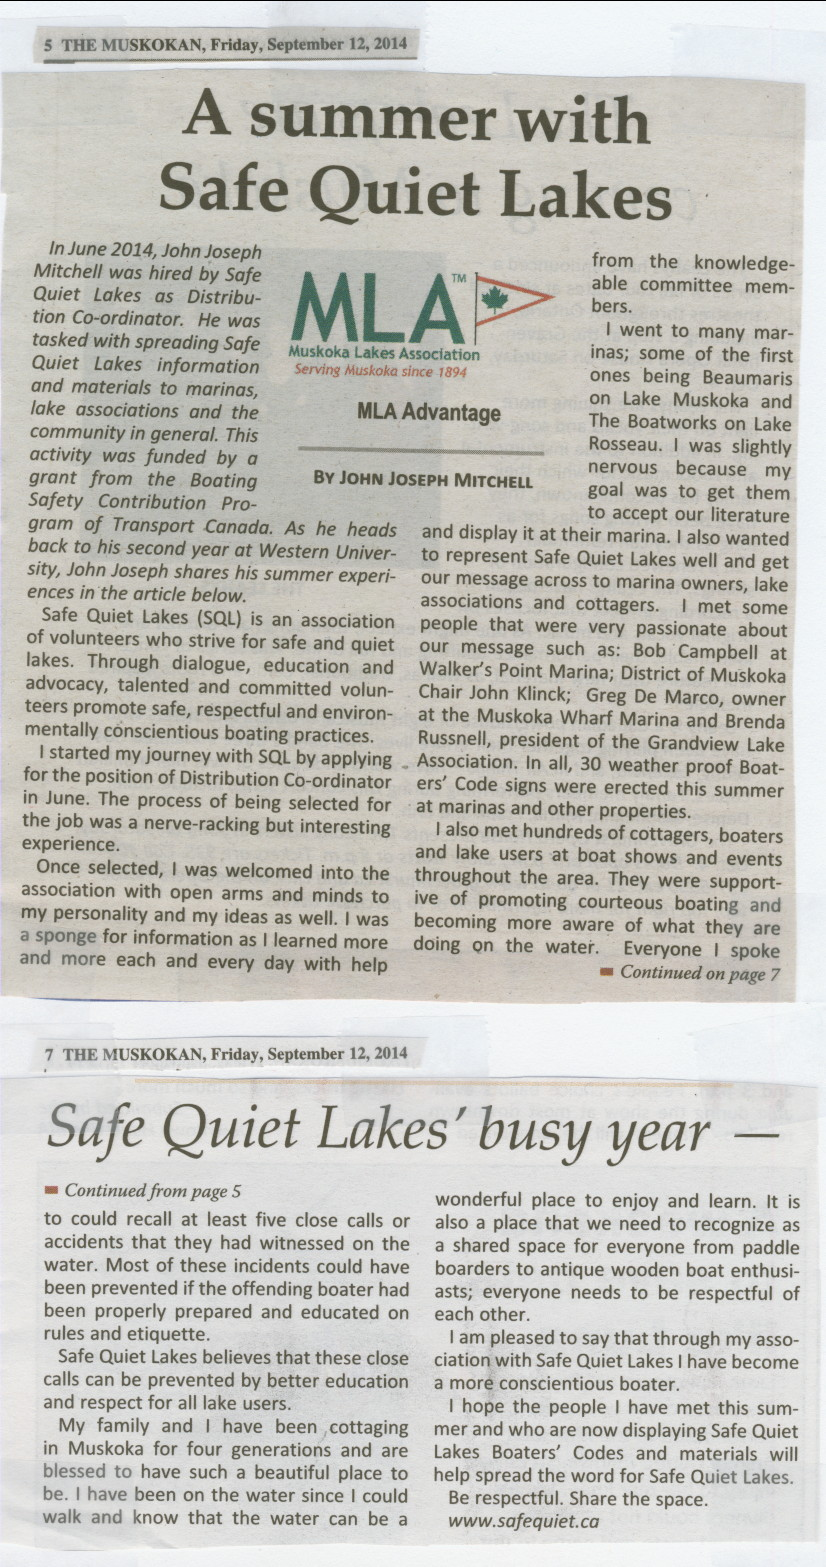 2014 - Sept 12 - A summer with Safe Quiet Lakes - The Muskoka page 5 & 7  by John Joseph Mitchell